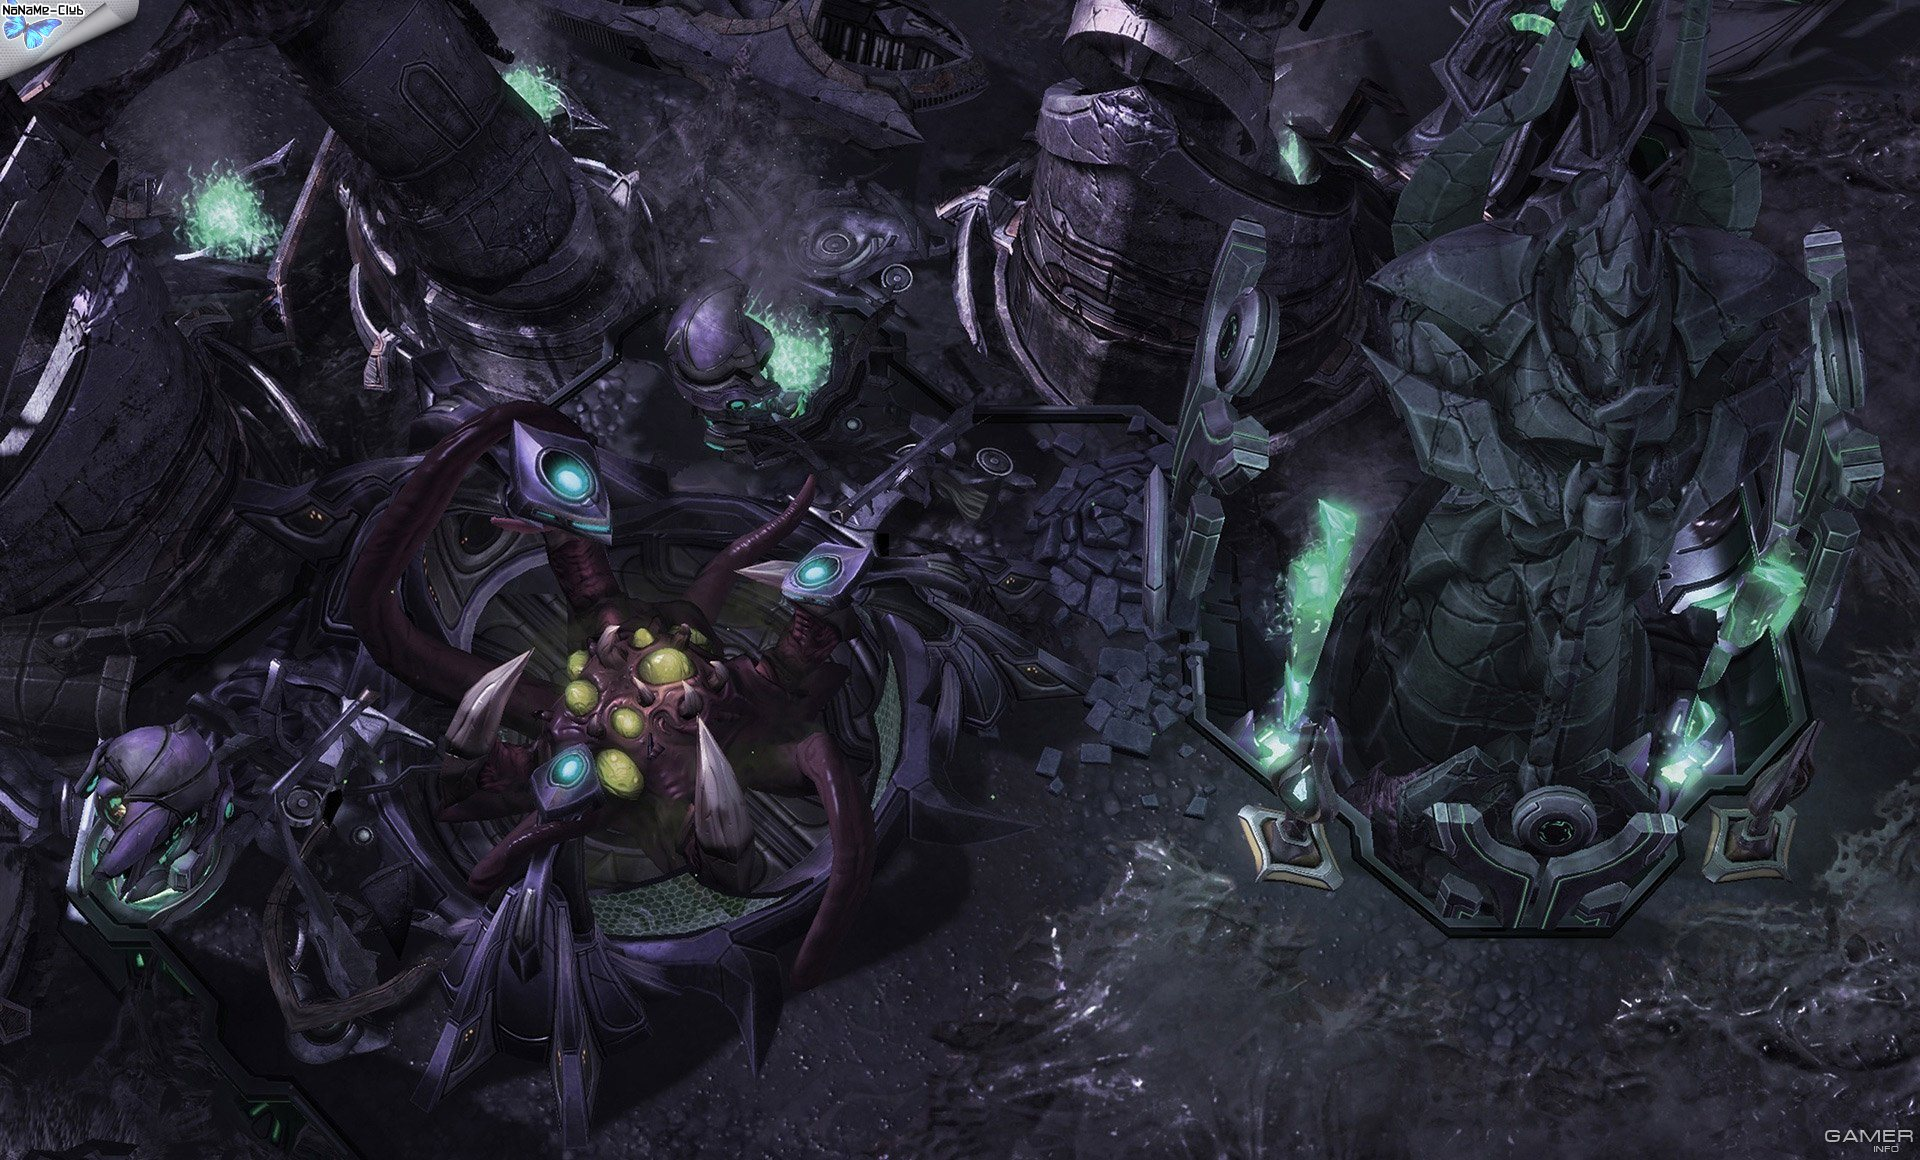 скачать StarCraft II: Legacy of the Void торрент